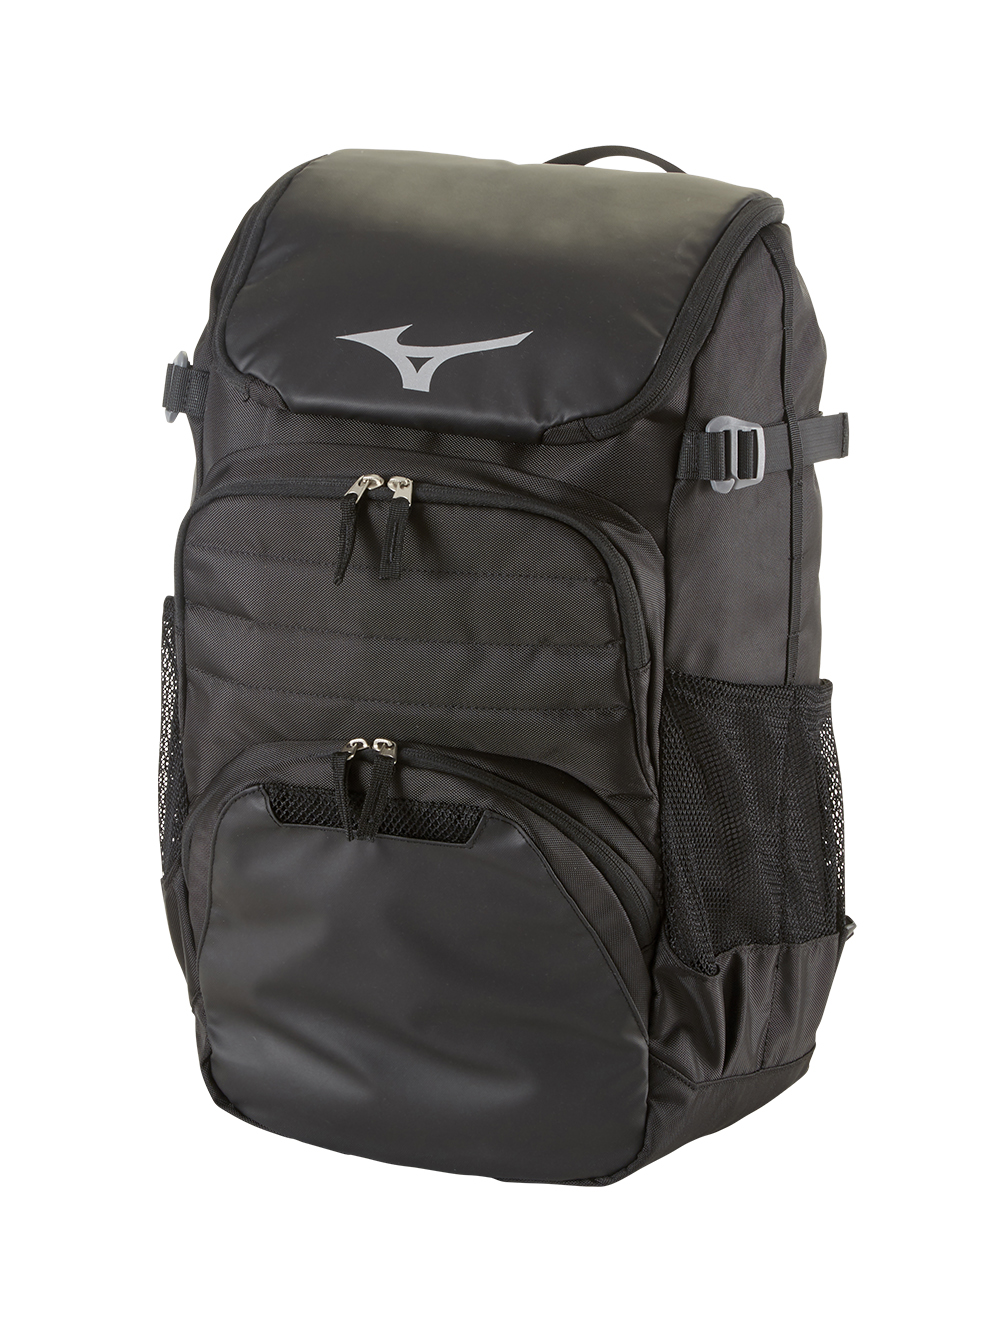 Mizuno Organizer Og5 Backpack Midwest Volleyball Warehouse